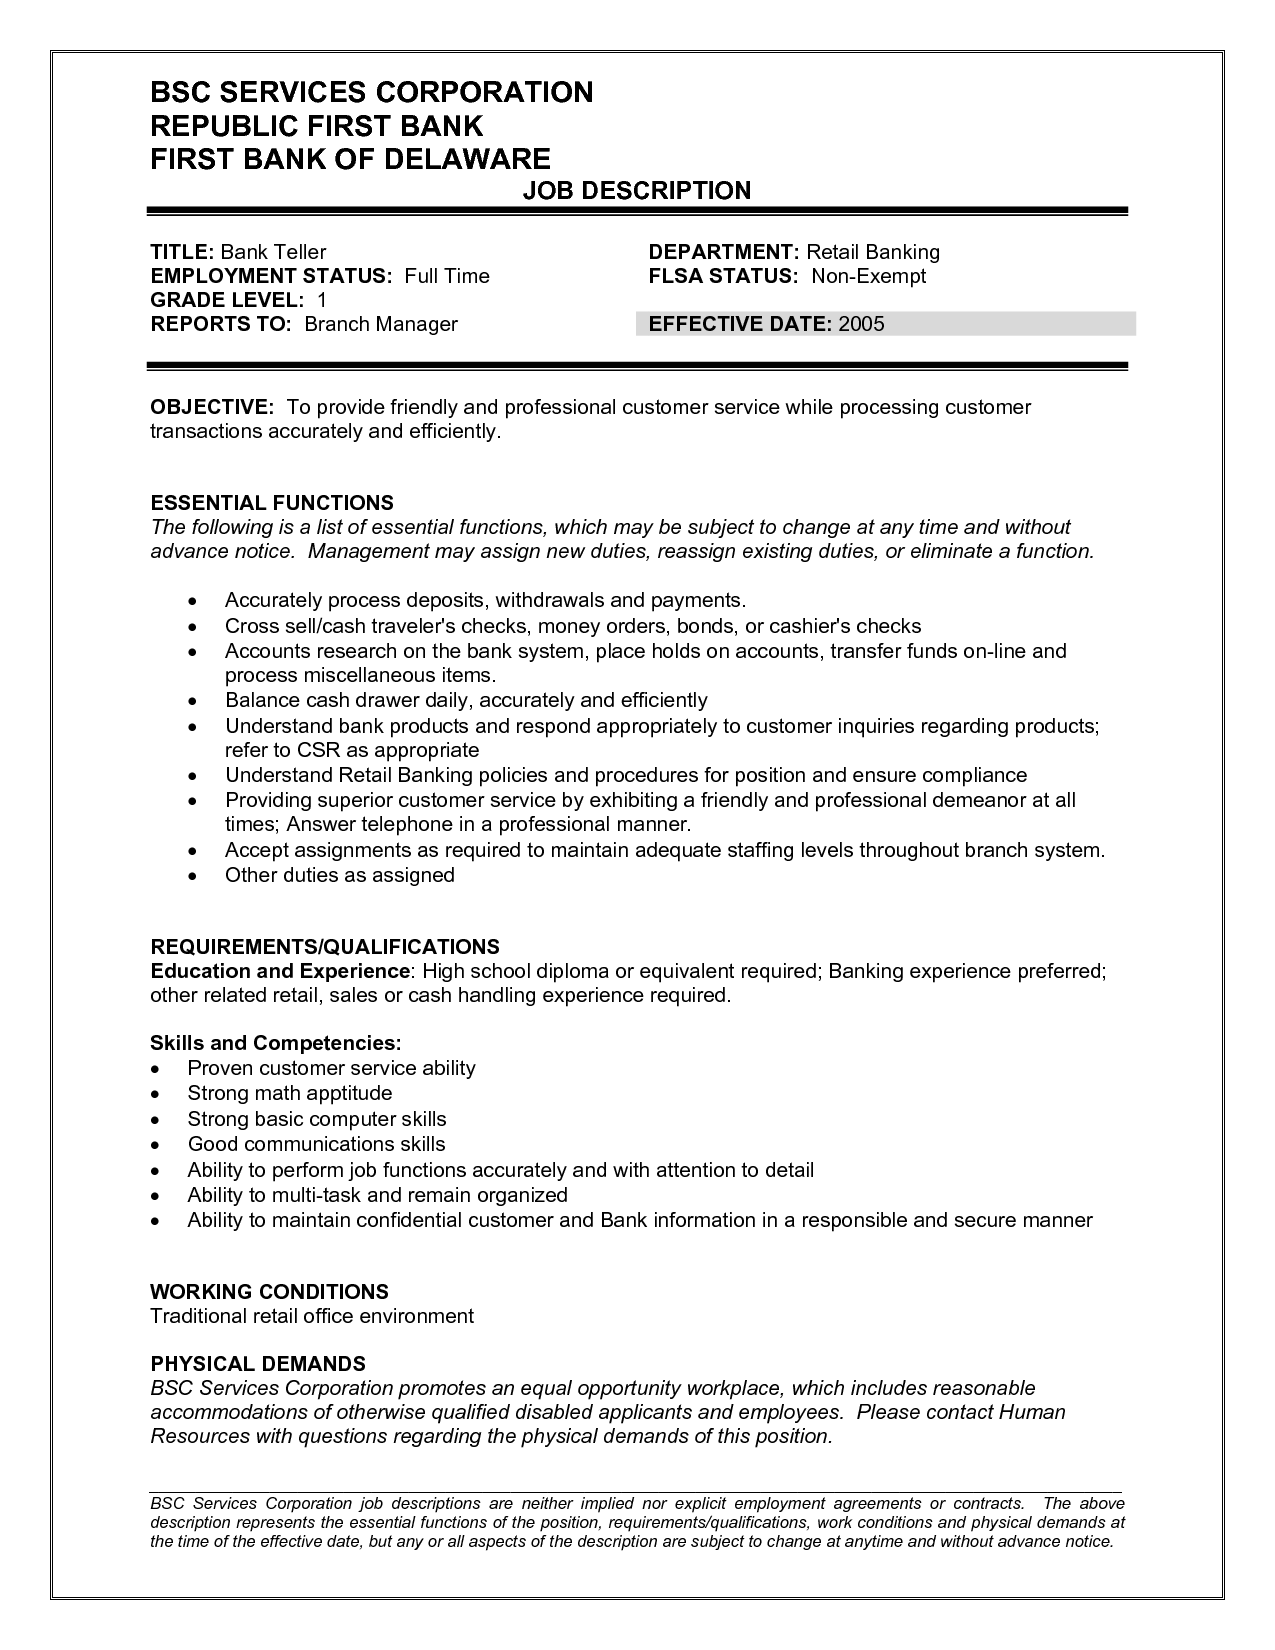 Bank Teller Job Description For Resume Bank Teller Job Description For Resume  Httpresumesdesign